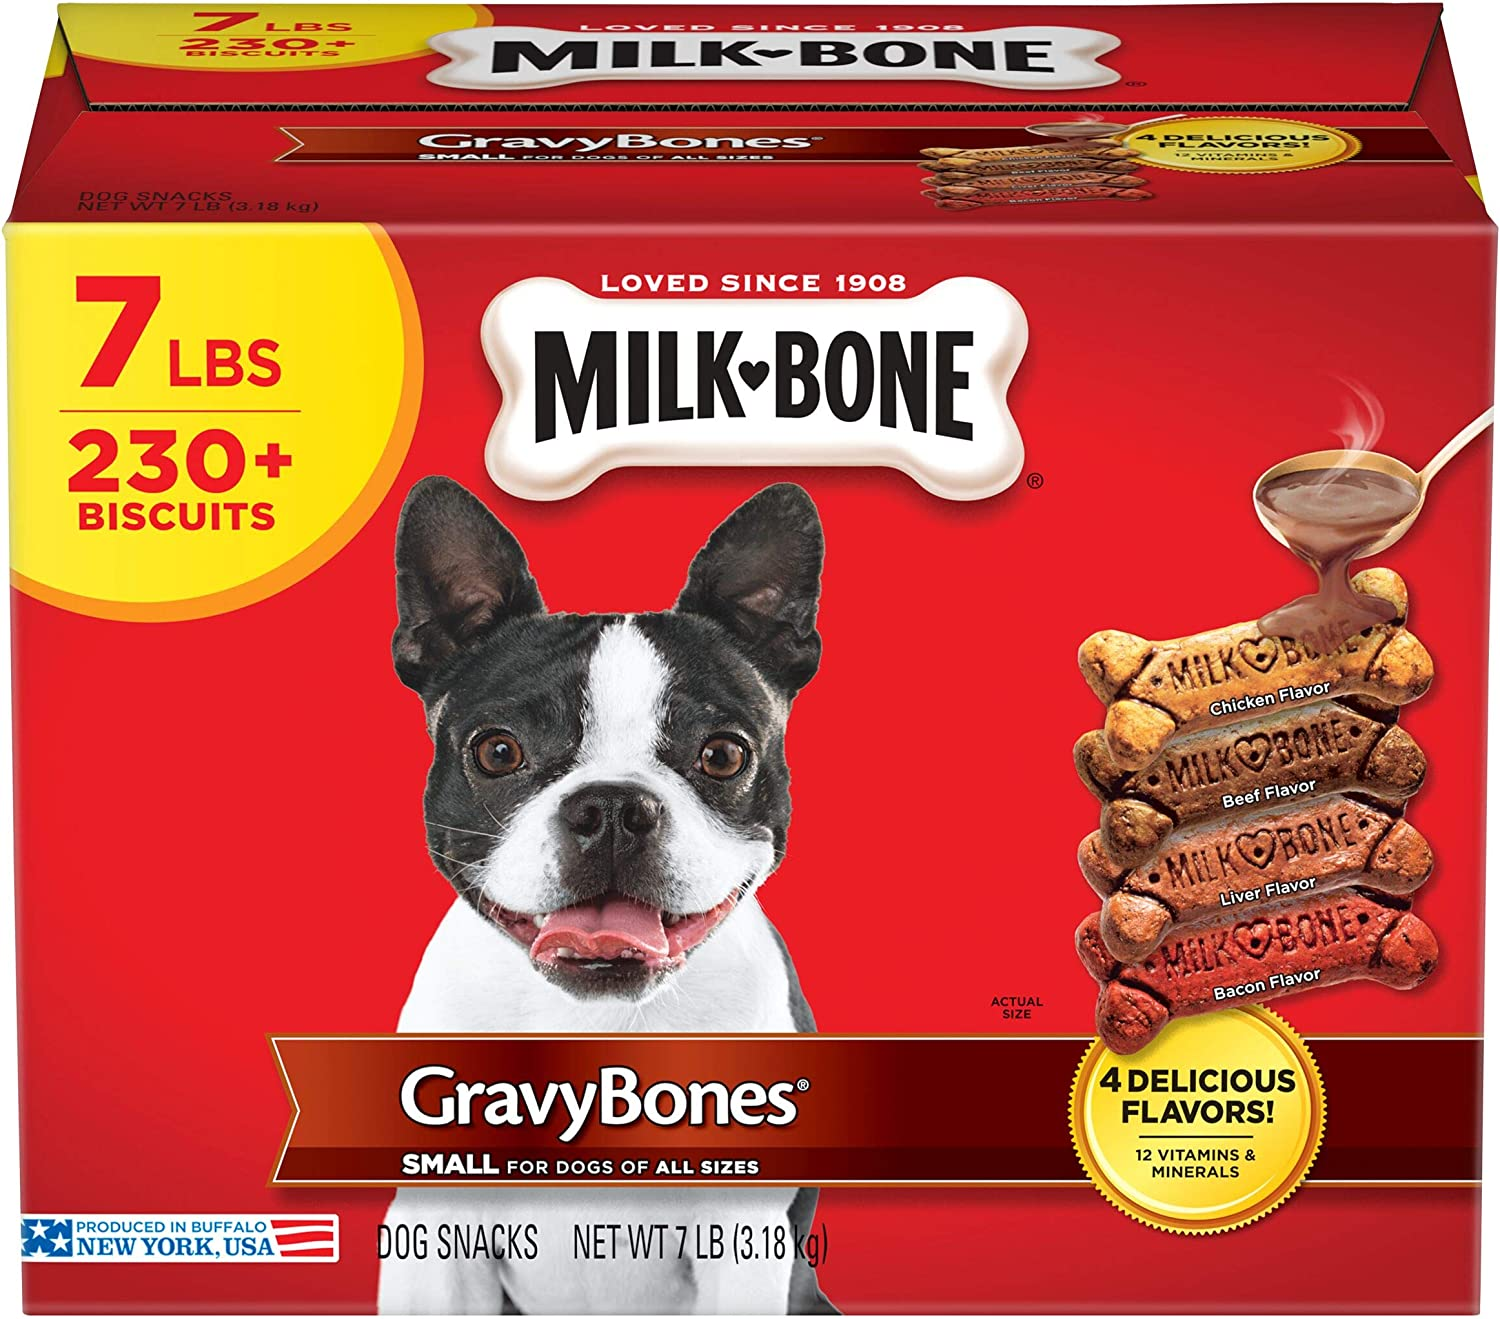 Milk-Bone Gravy Bones Dog Biscuits, 4 Meaty Flavors with 12 Vitamins & Minerals